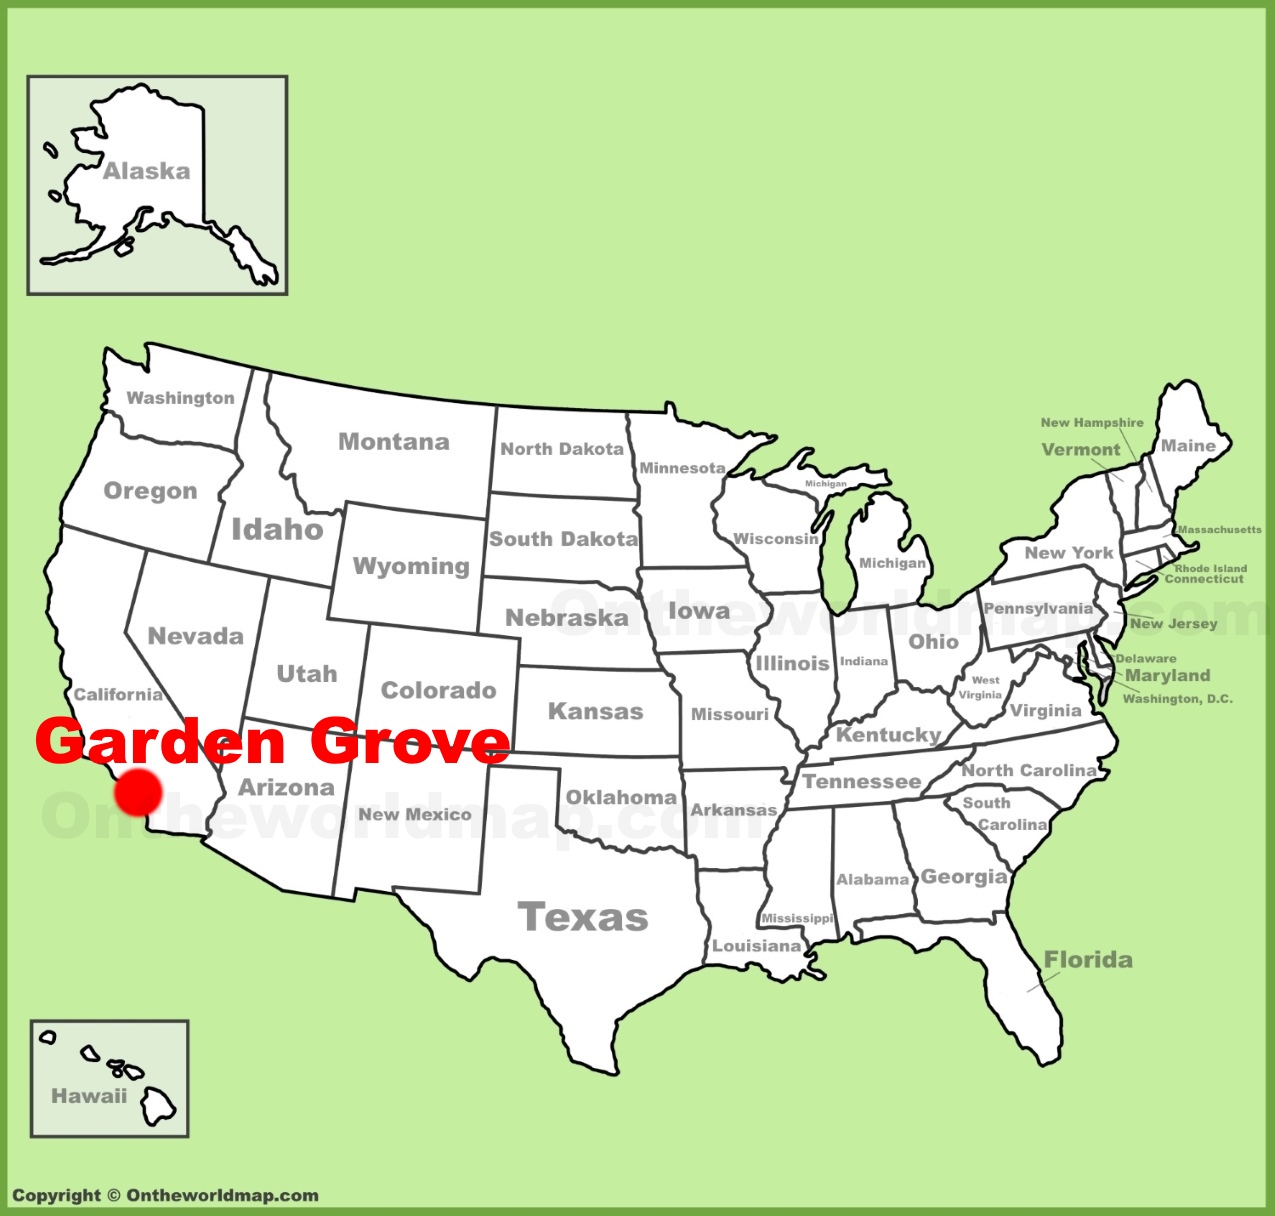 Garden Grove location on the US Map